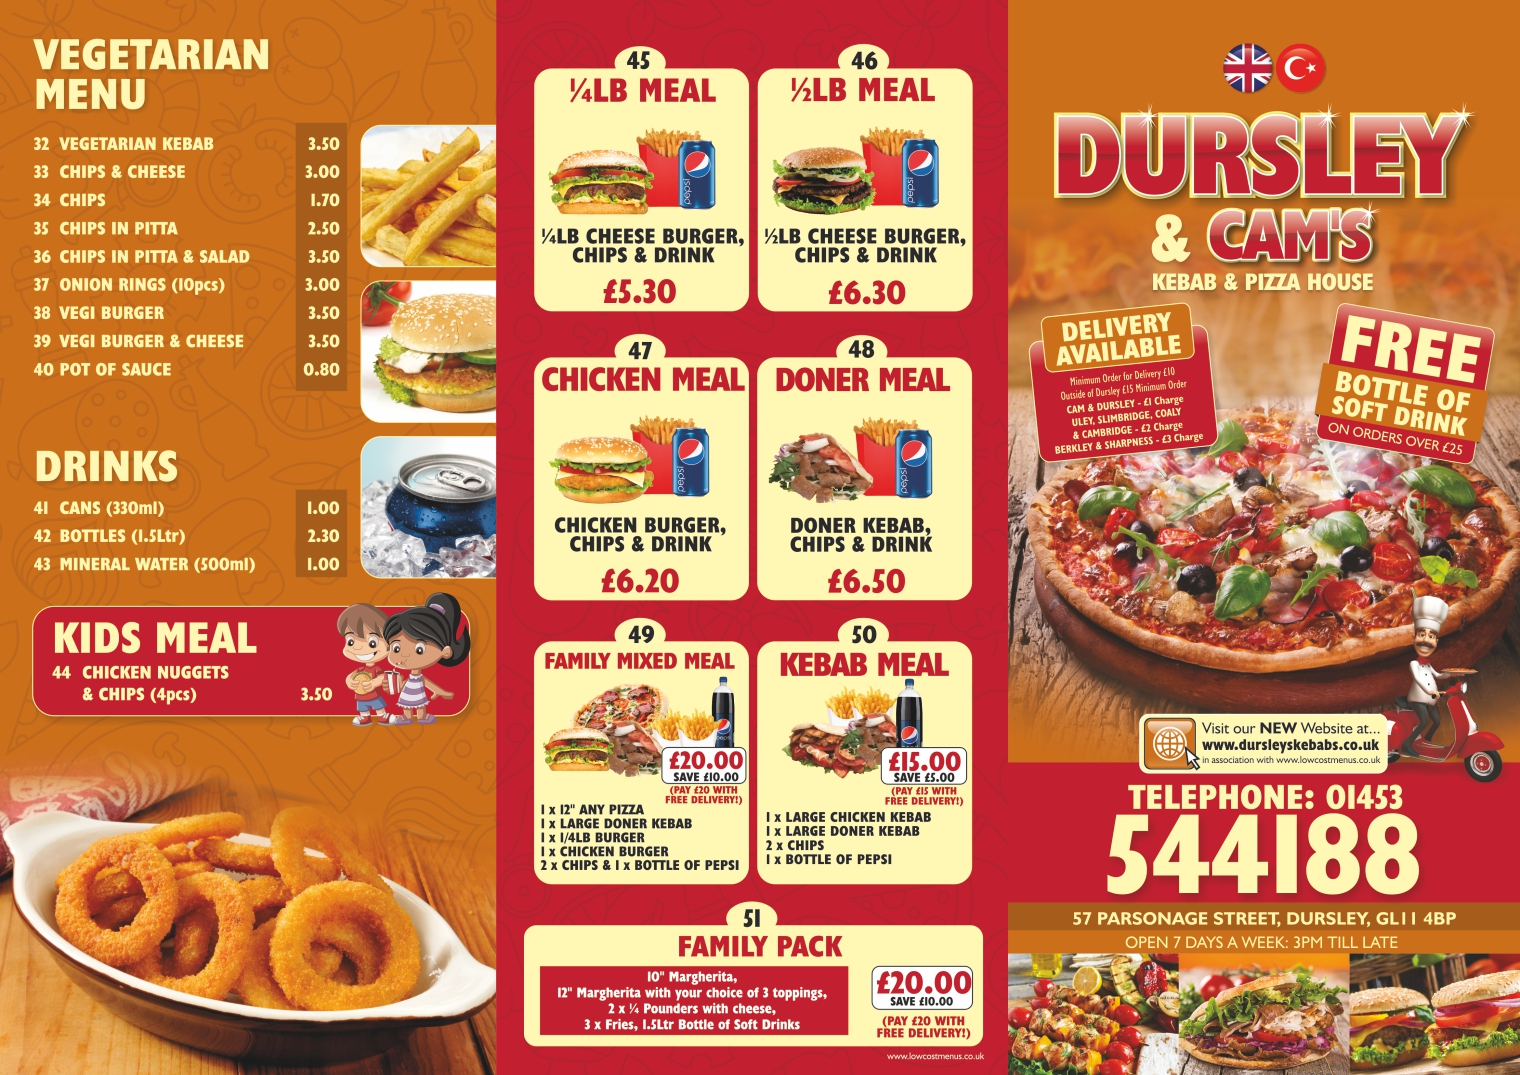 Takeaway Menu 2 - Dursley & Cam's Kebab & Pizza House - GL11